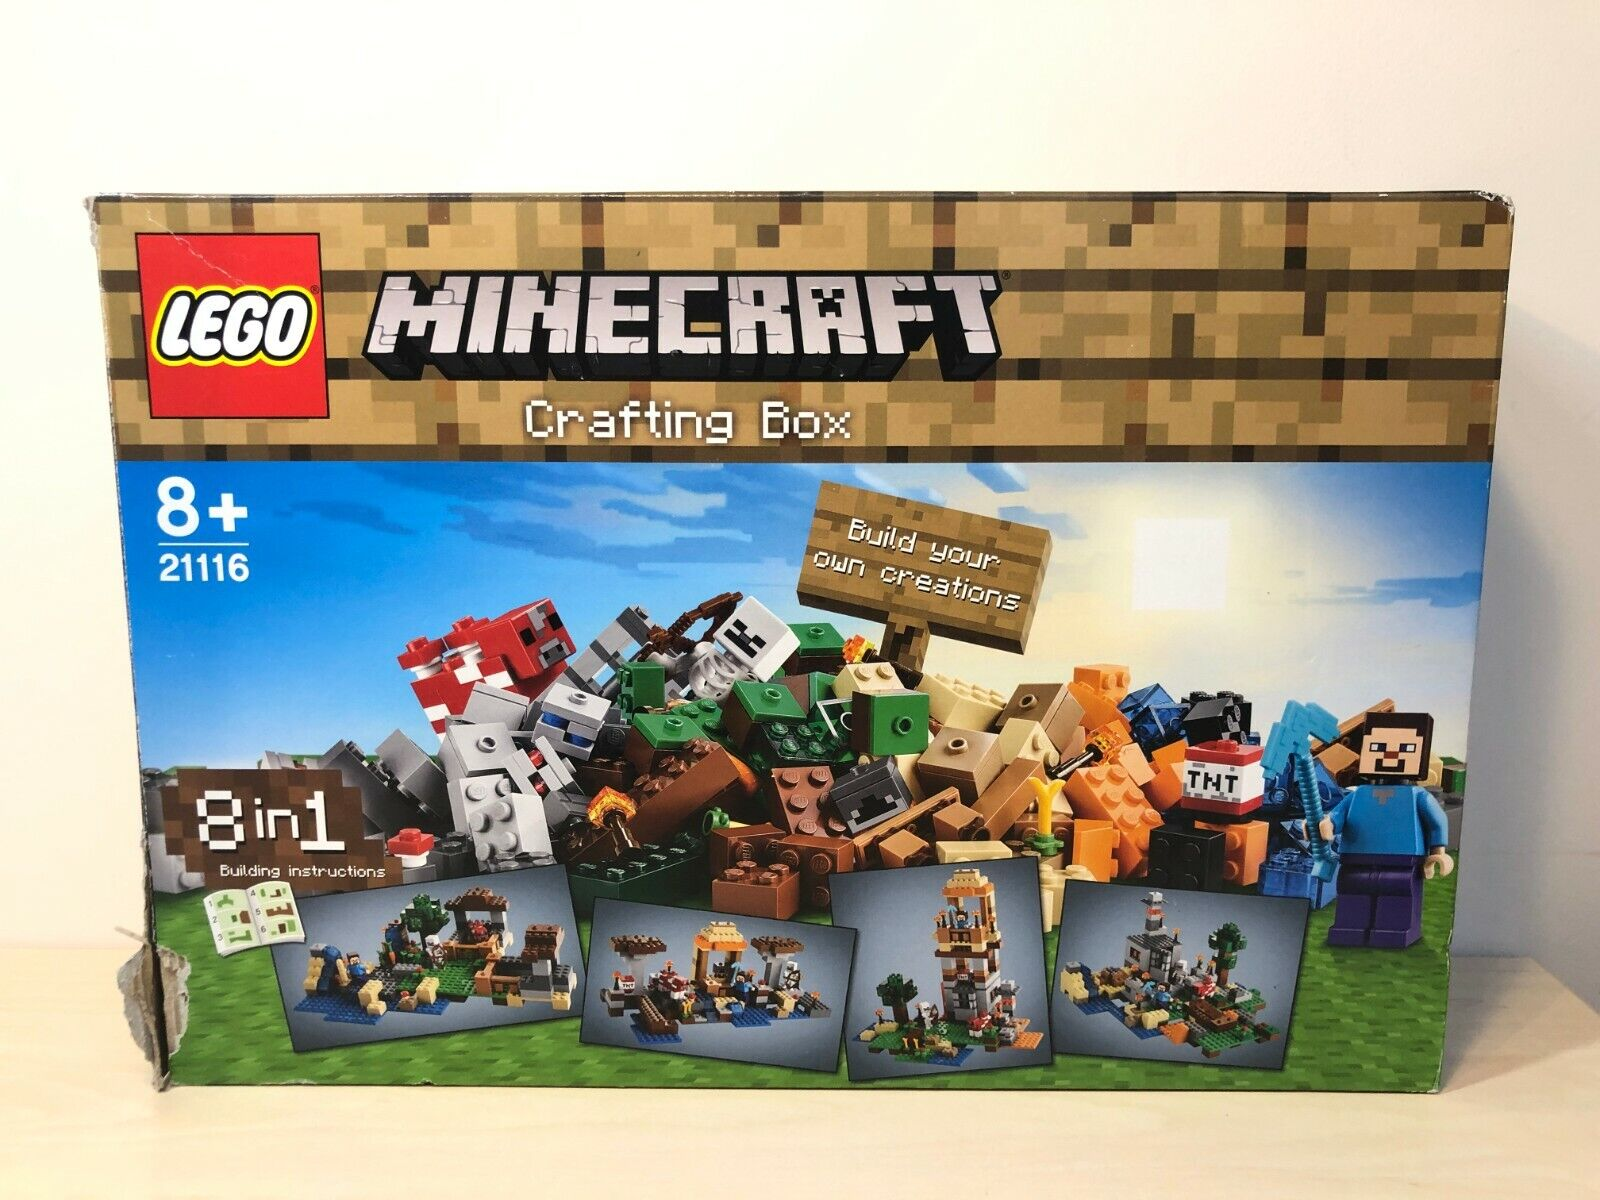 LEGO 21116 MINECRAFT Crafting Box Full complete